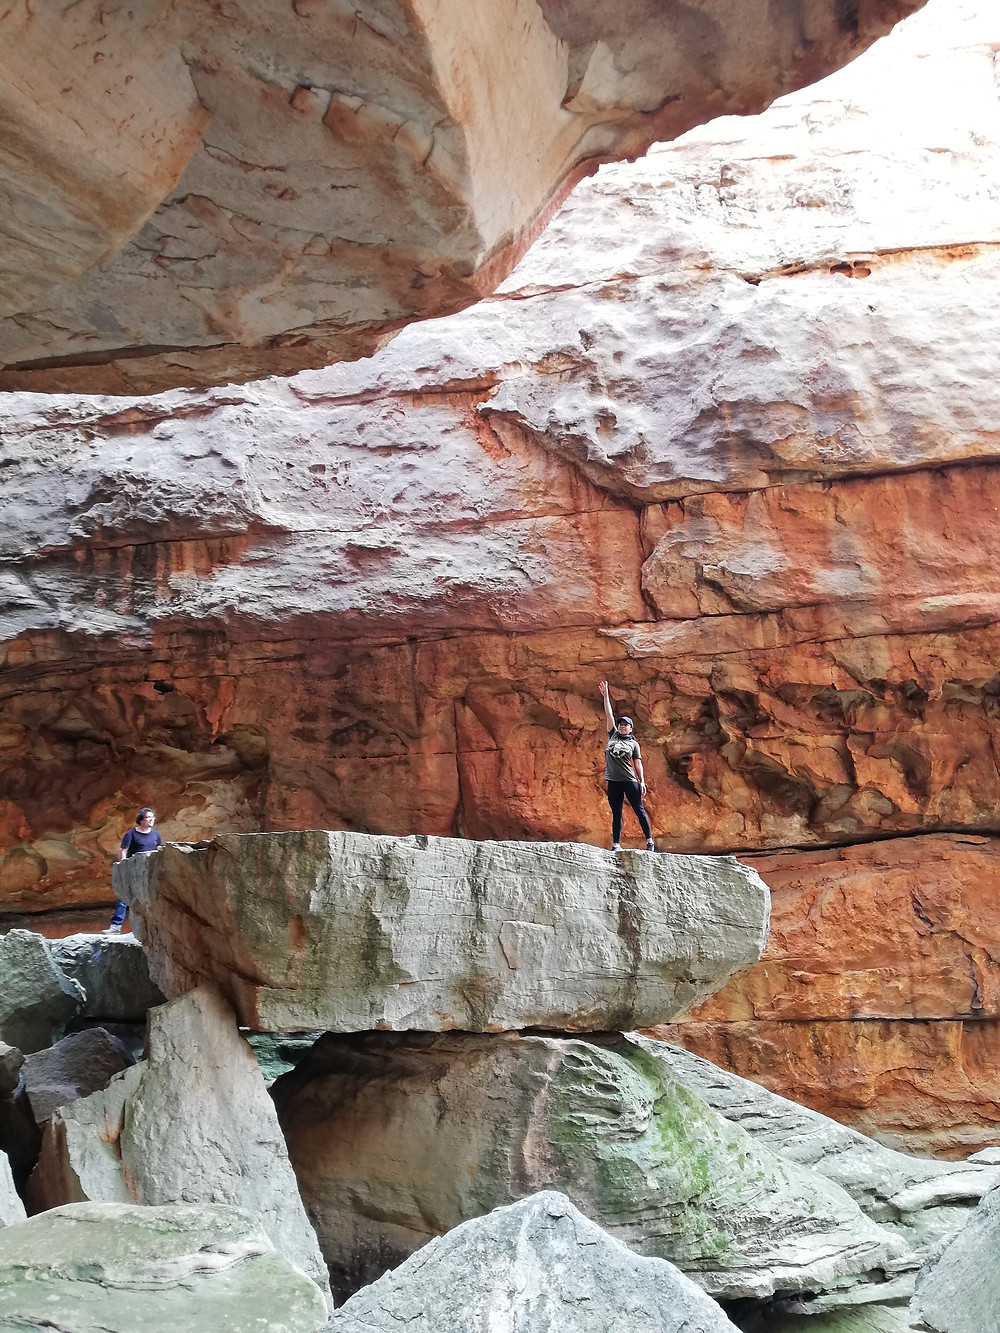 A woman standing stretching towards the ceiling of a large rock chamber